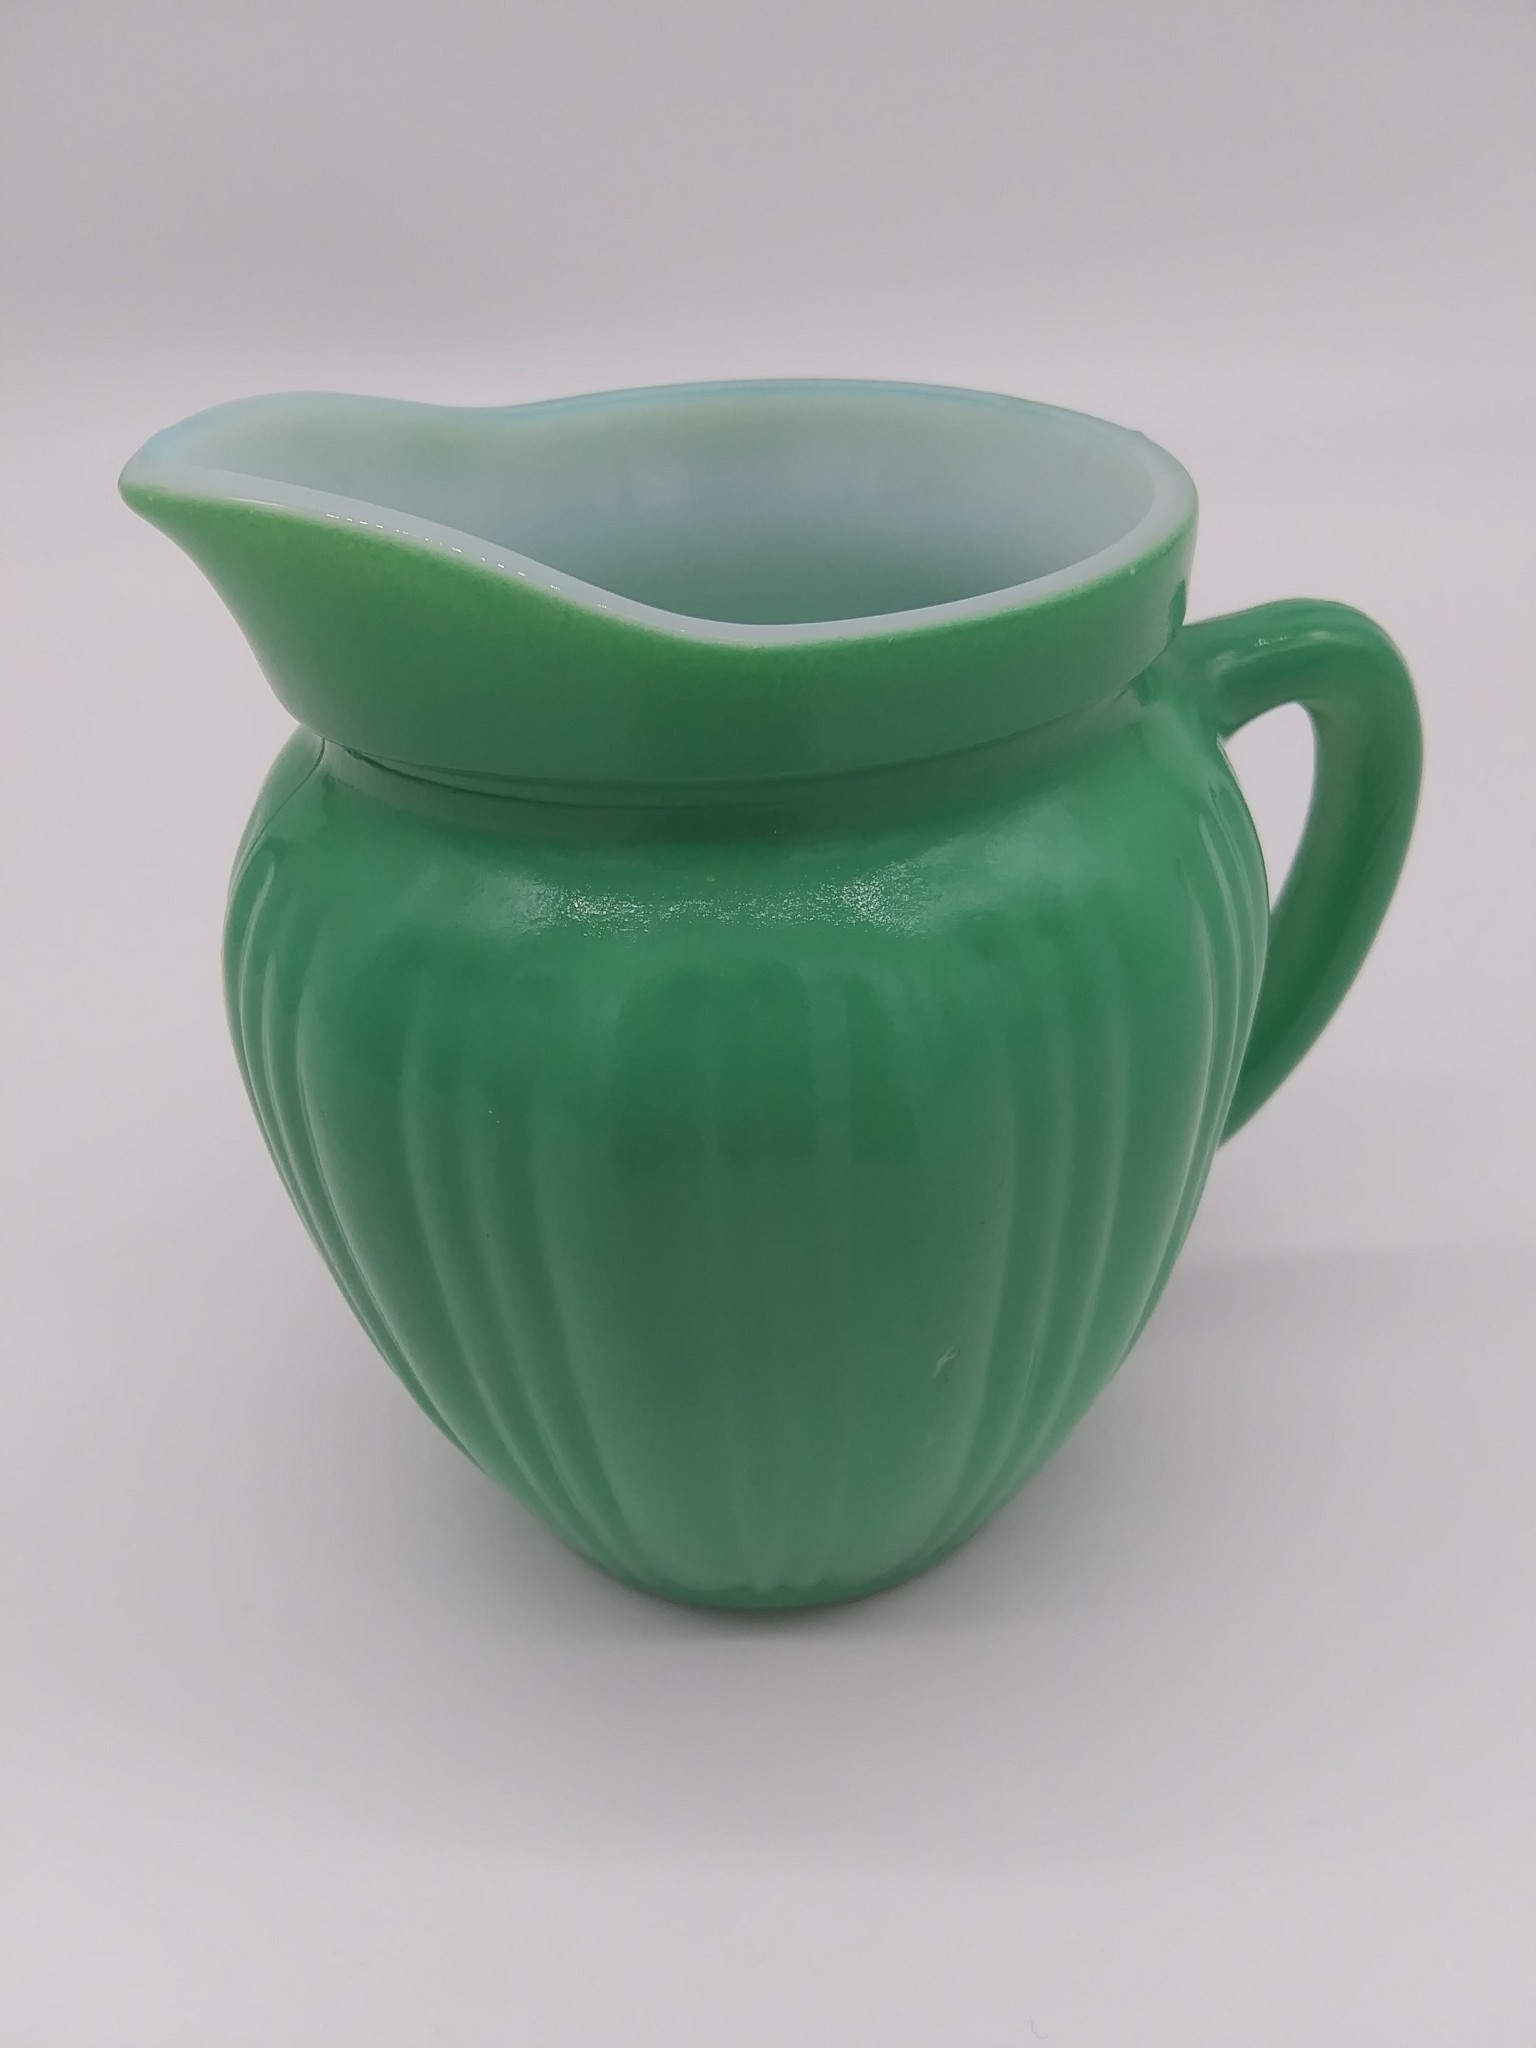 Lime Green Ribbed Cream Pitcher (likely) Hazel Atlas